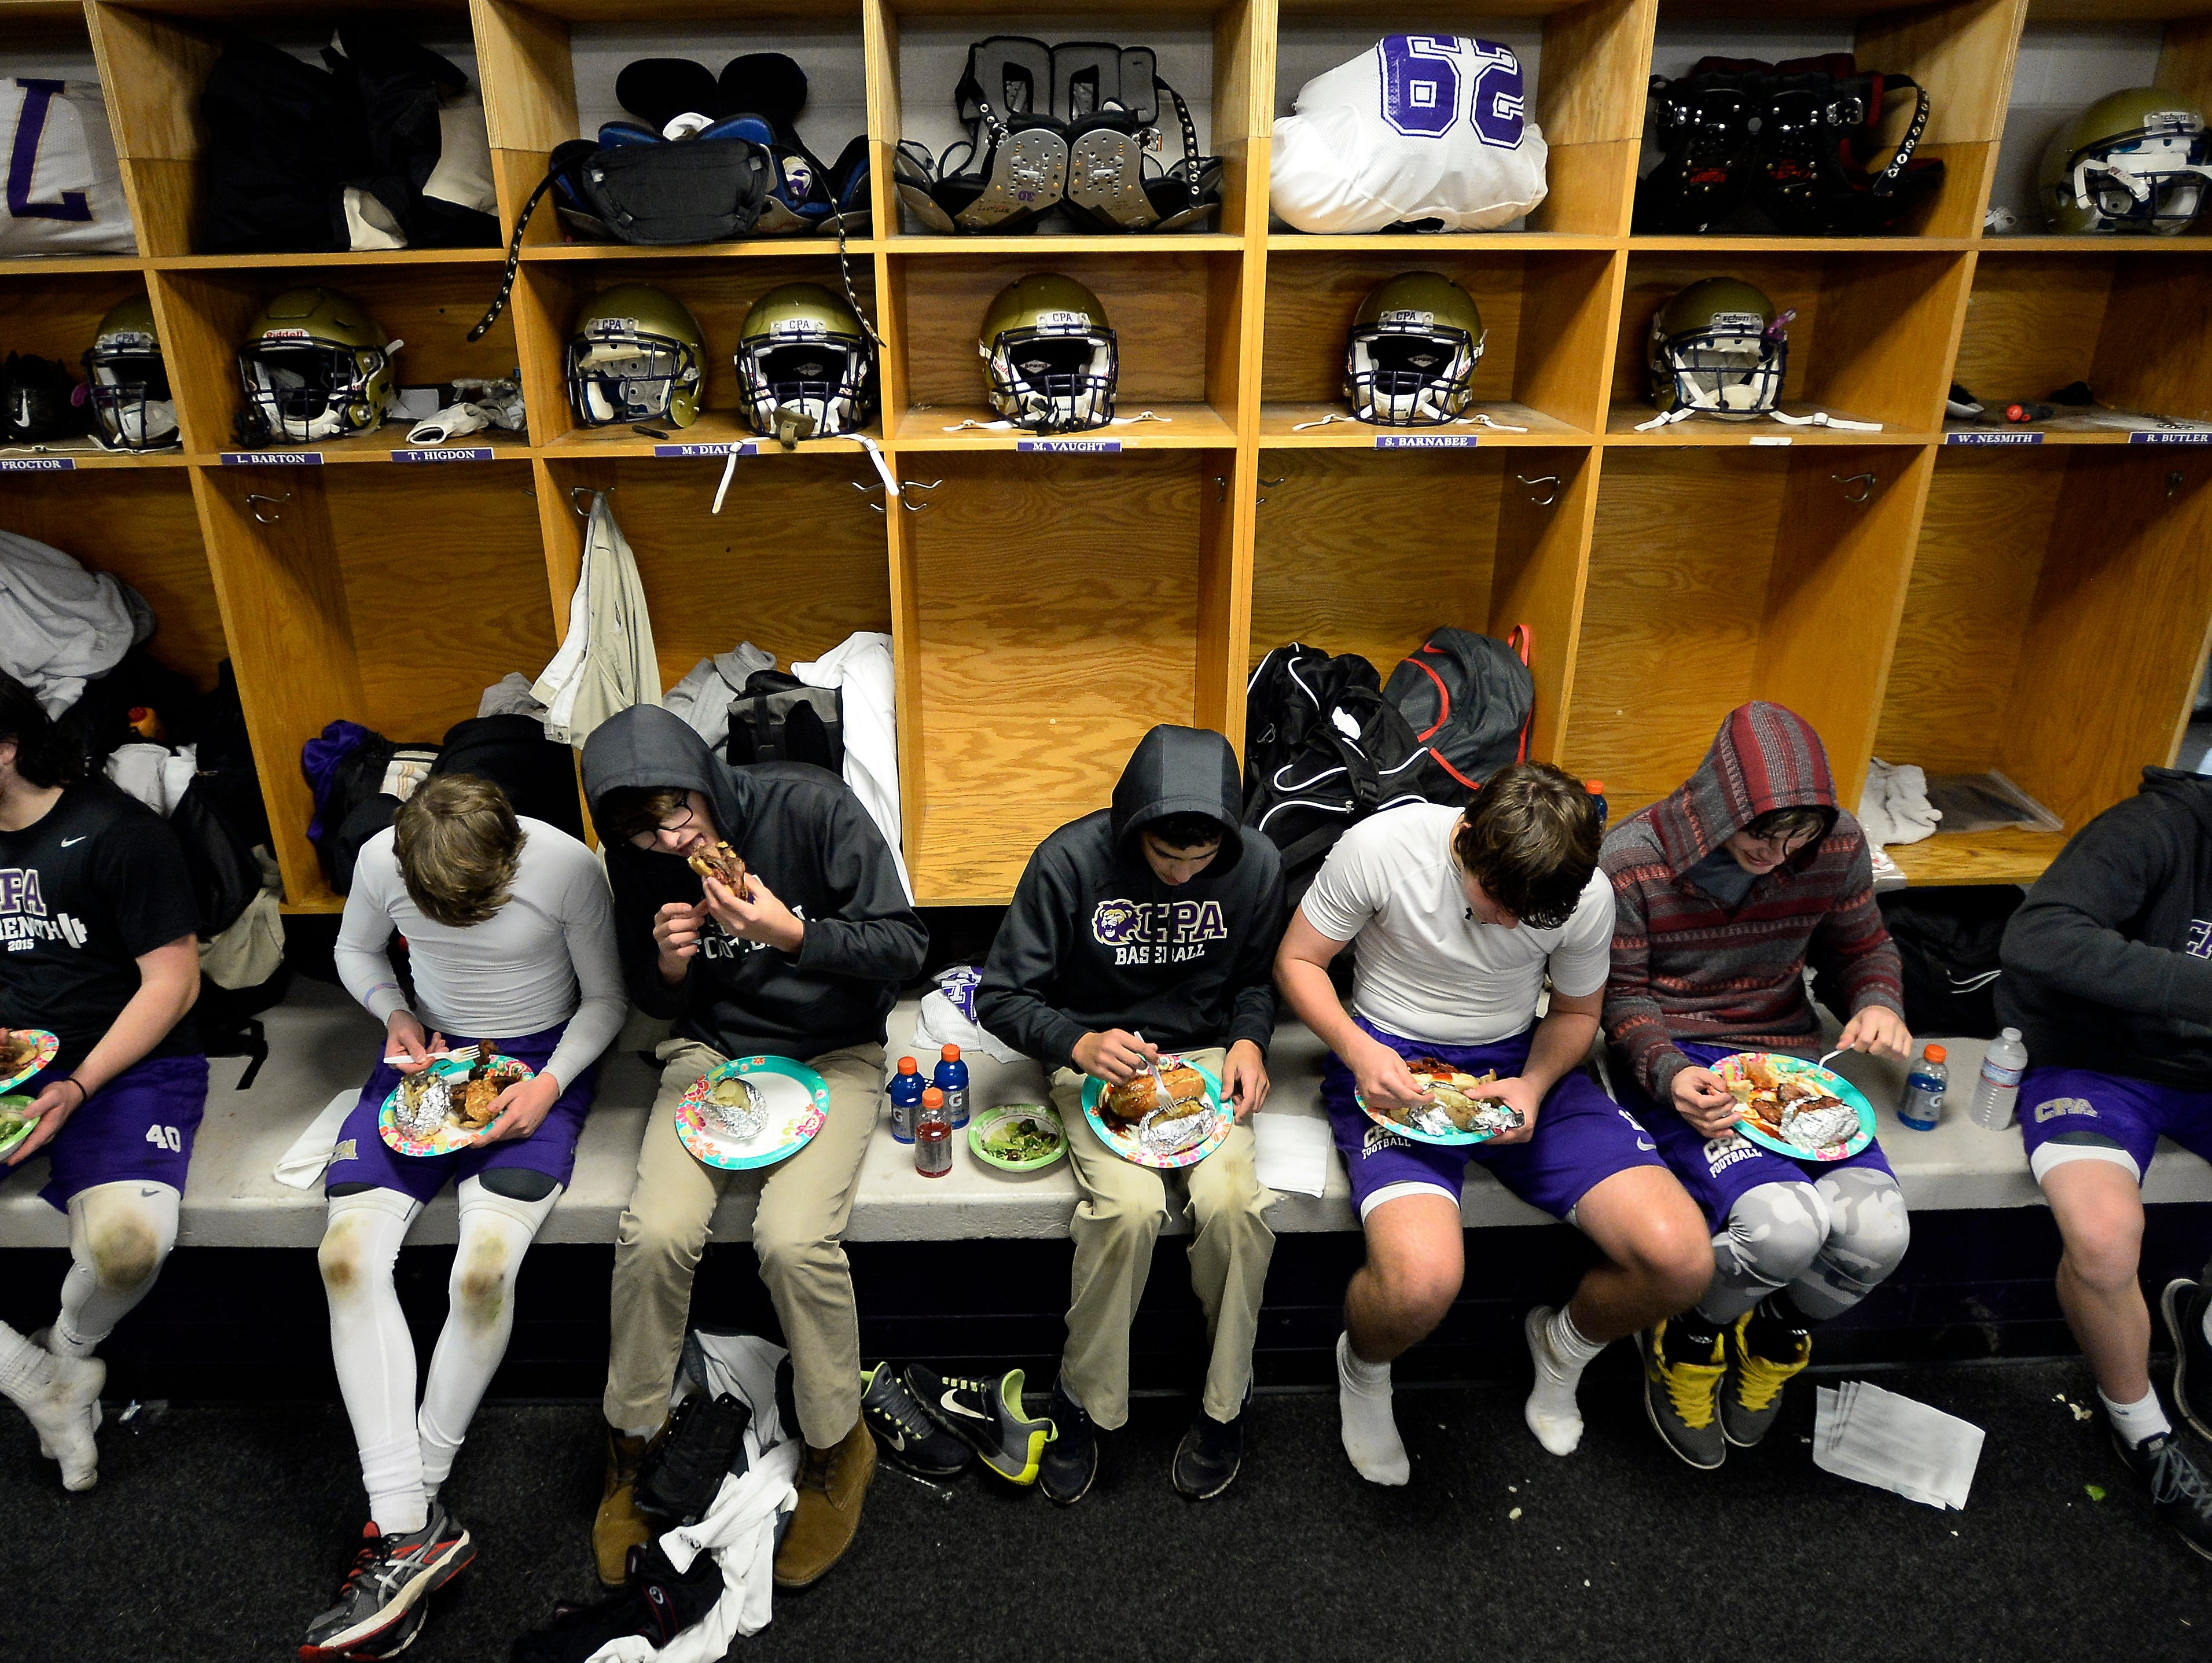 CPA football players enjoy an early Thanksgiving holiday team dinner in the Christ Presbyterian Academy football locker room after practice on Tuesday, Nov. 24, 2015 in Nashville, Tenn.